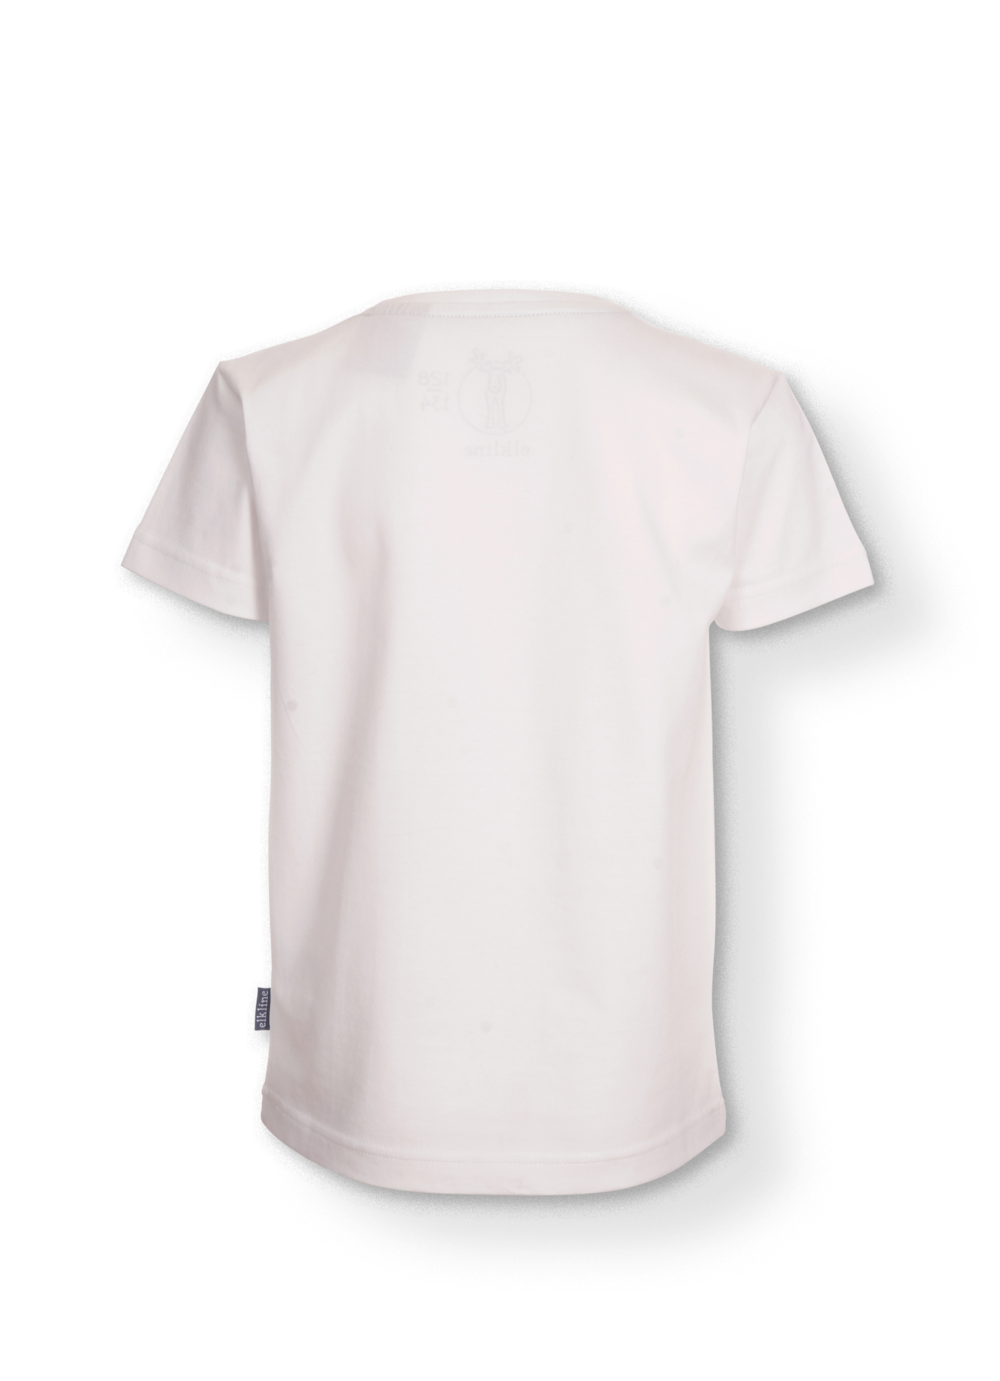 _abenteuer-white-back-FS19.png